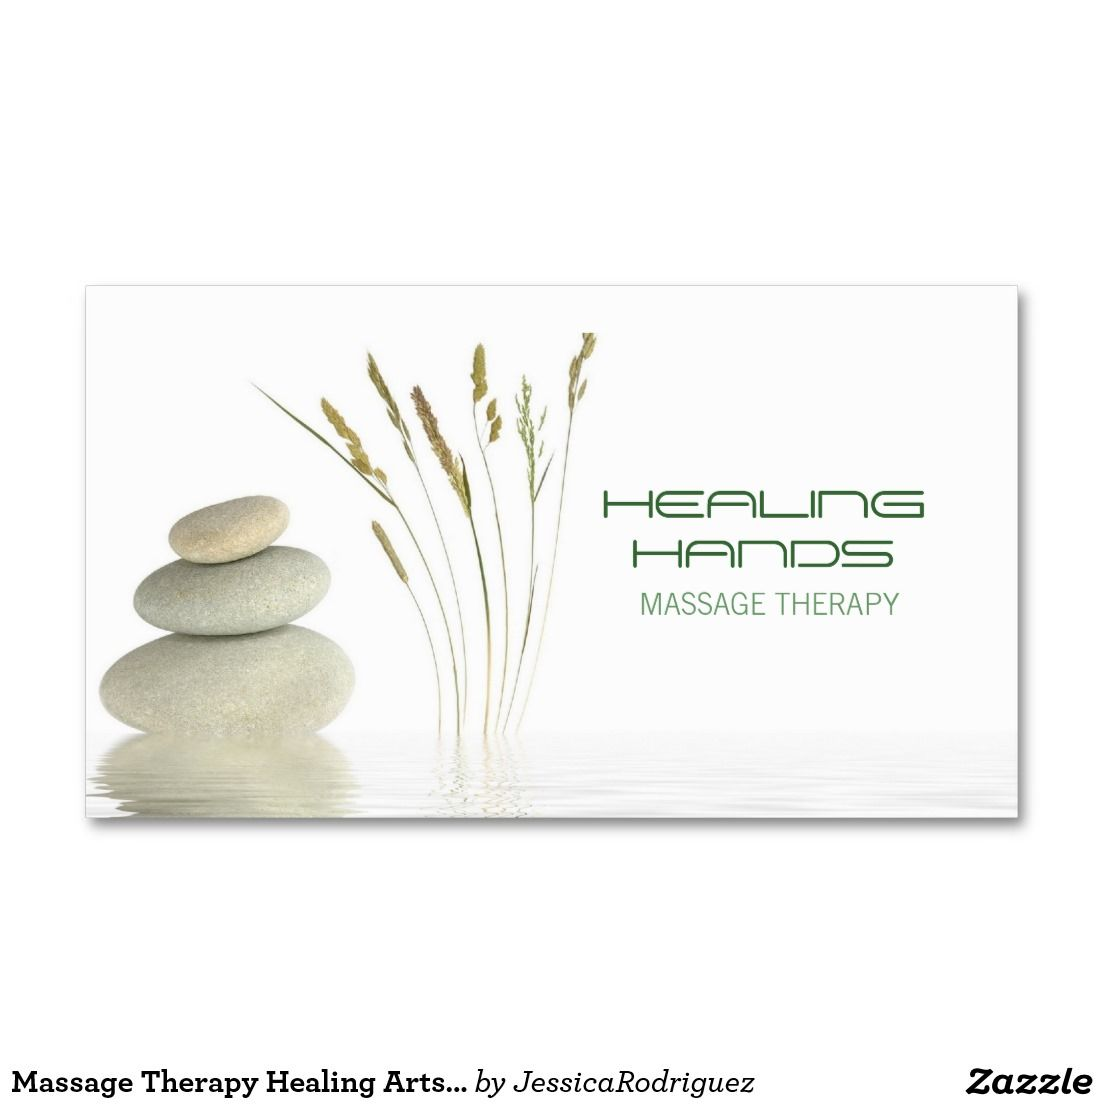 massage therapy healing arts skin care business business card massage therapy healing arts skin care business pack of standard business cards